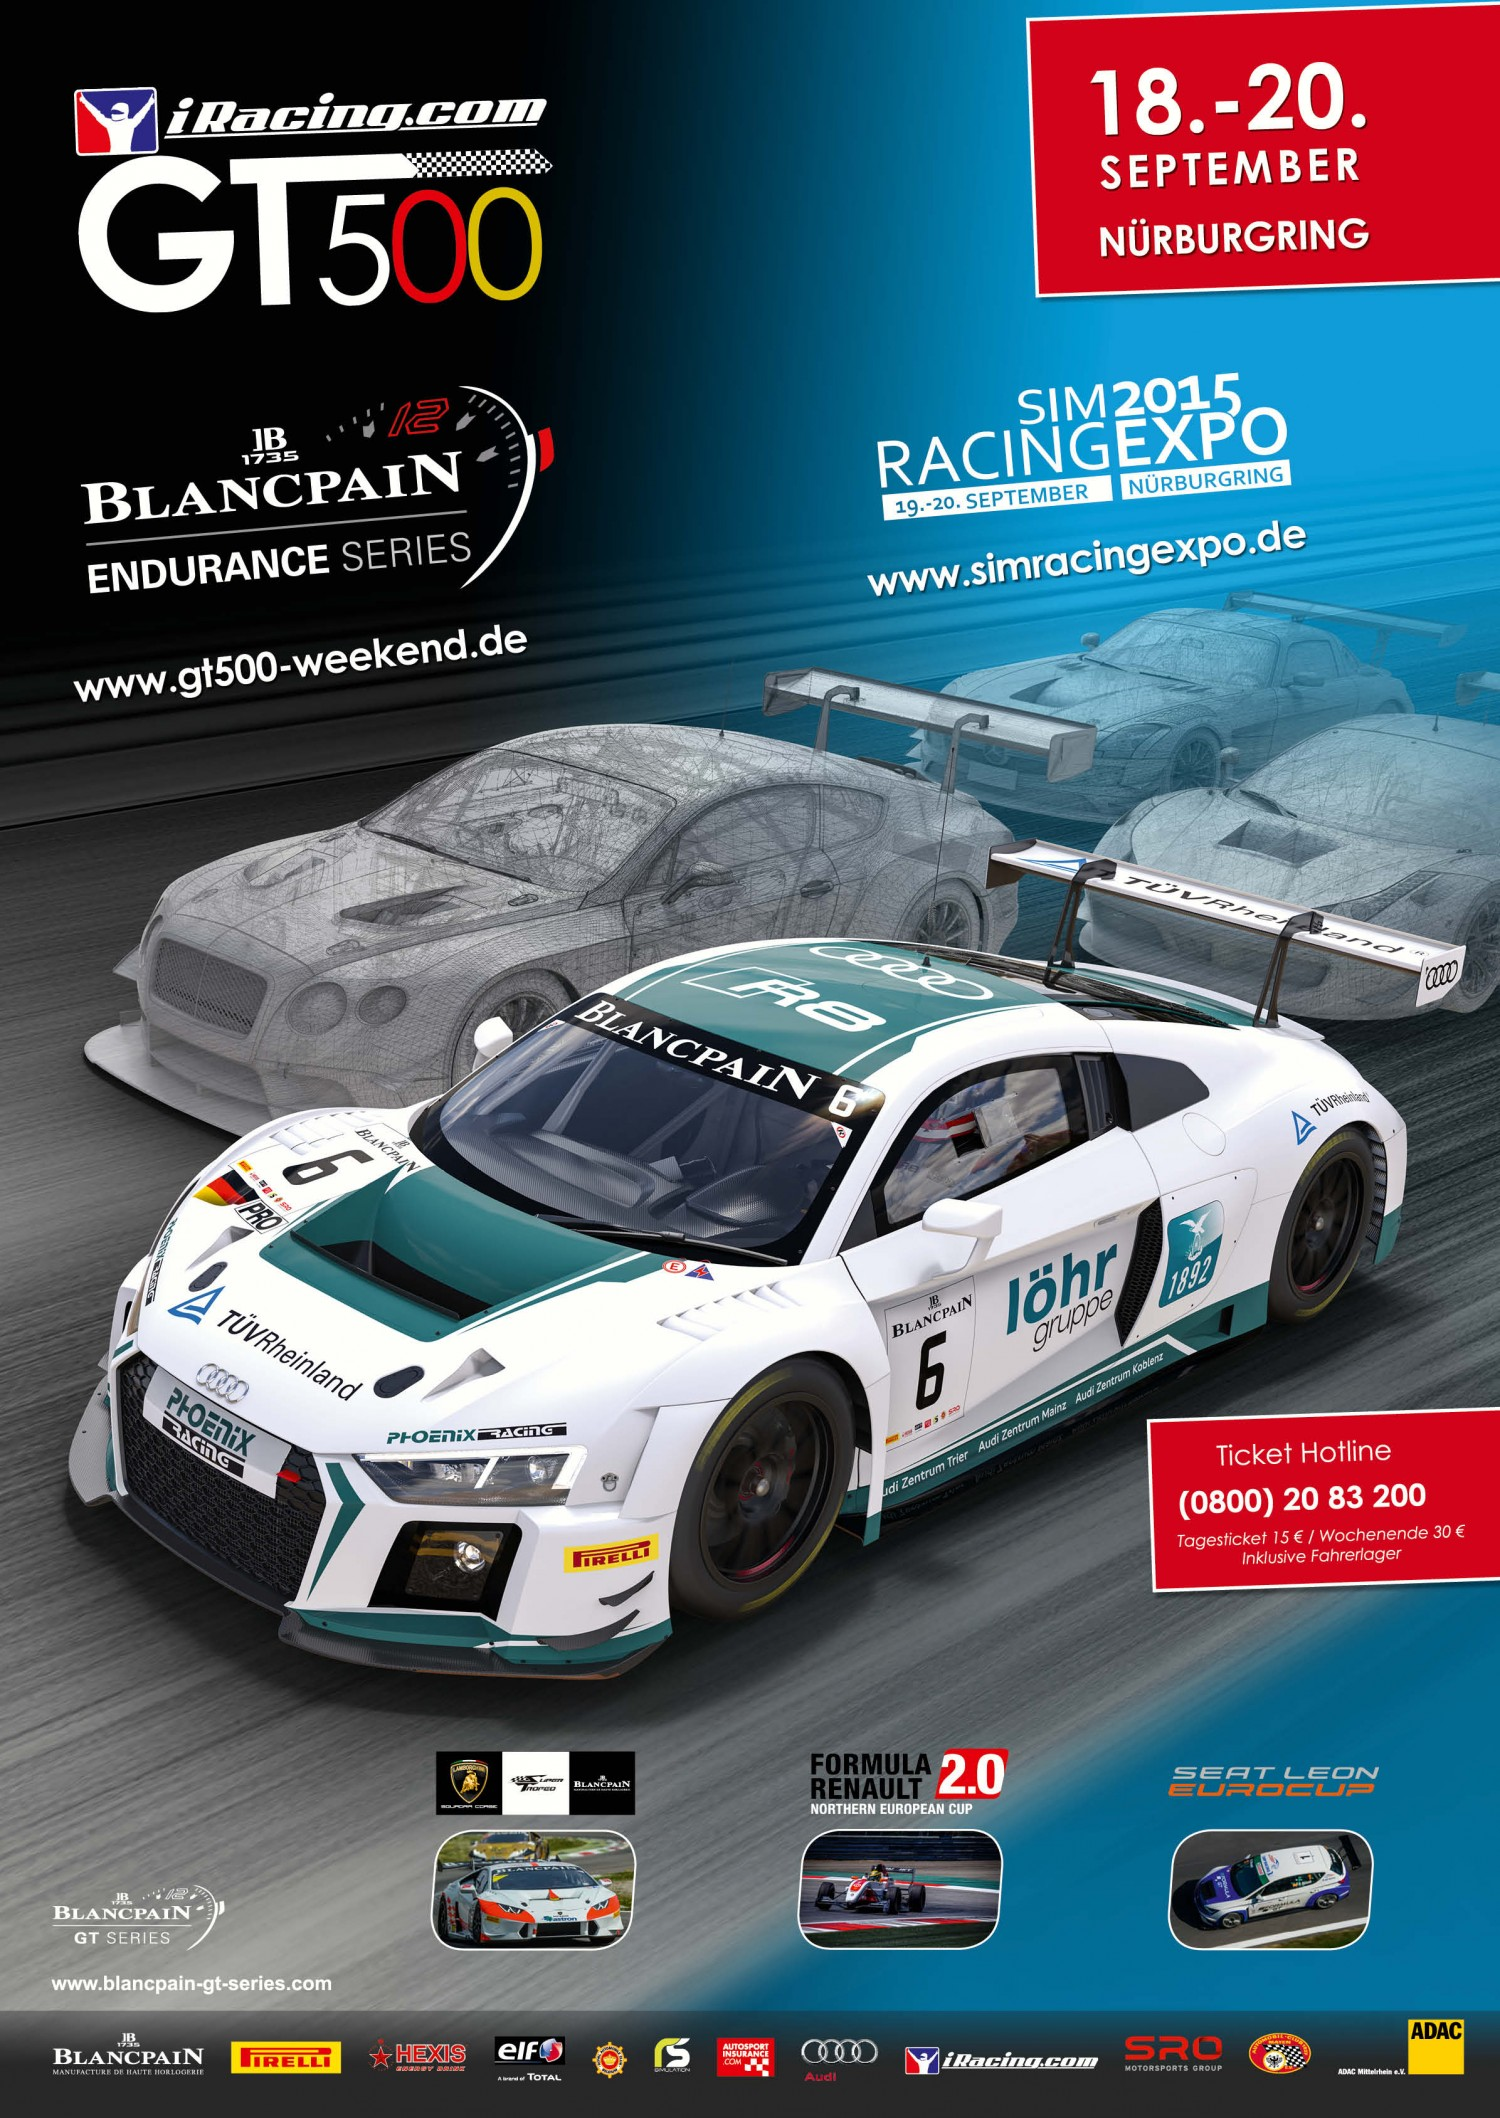 iRacing com GT500 race will decide the 2015 Blancpain